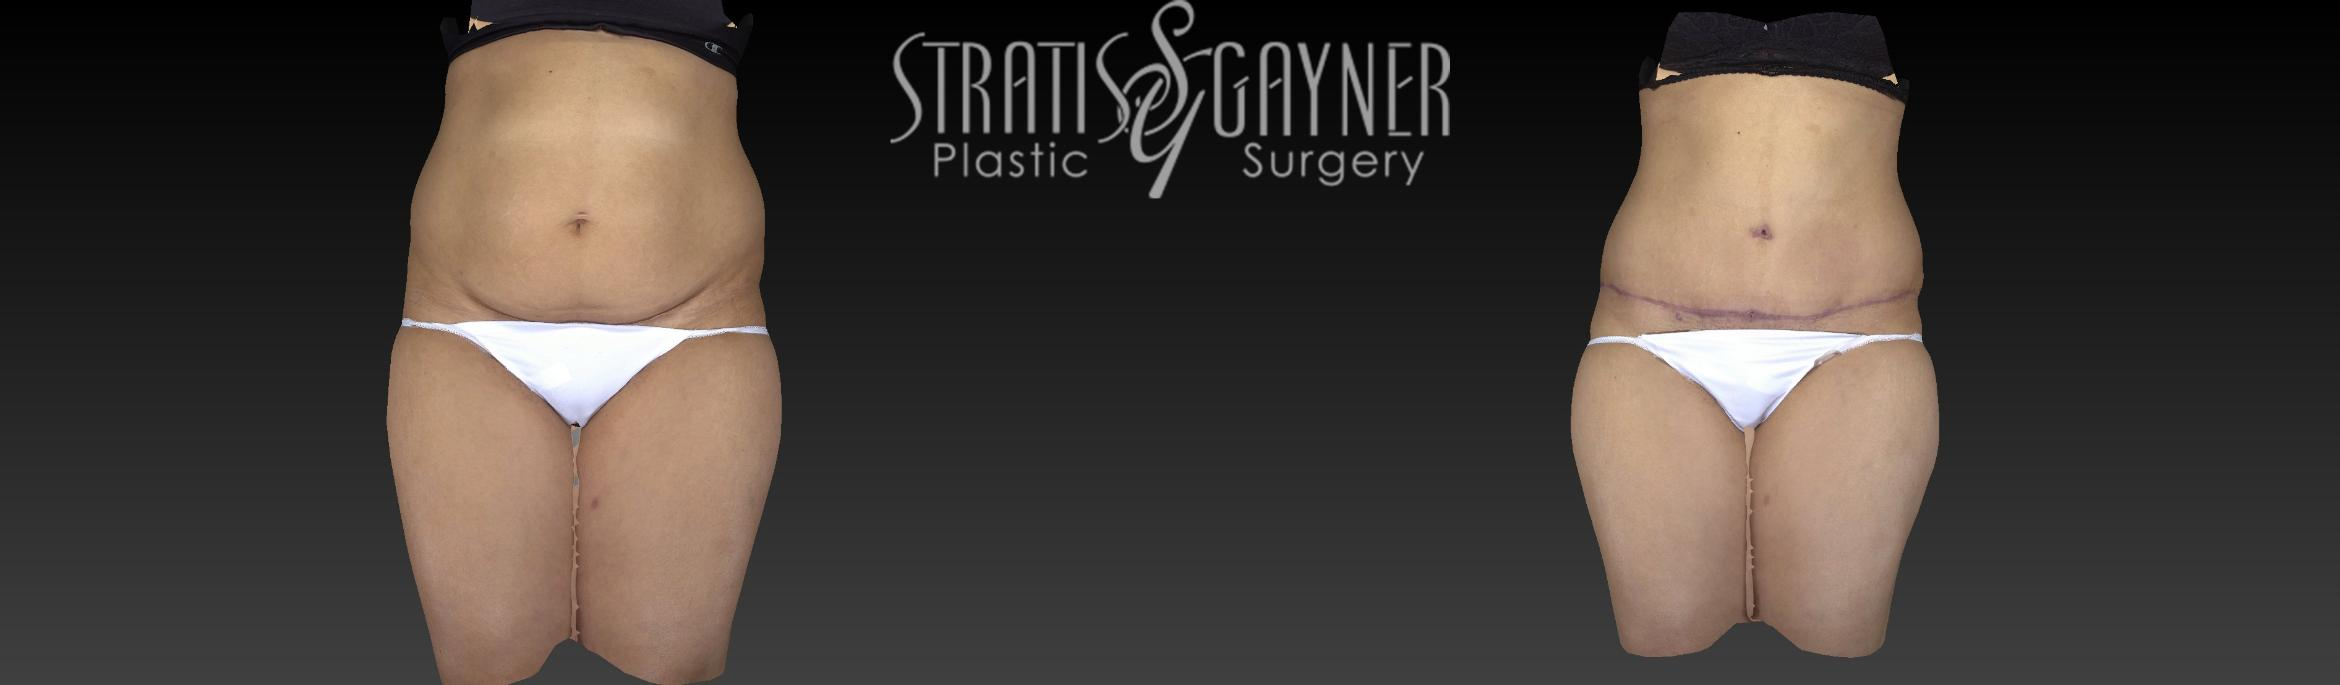 Tummy Tuck Case 196 Before & After View #1 | Harrisburg, PA | Stratis Gayner Plastic Surgery